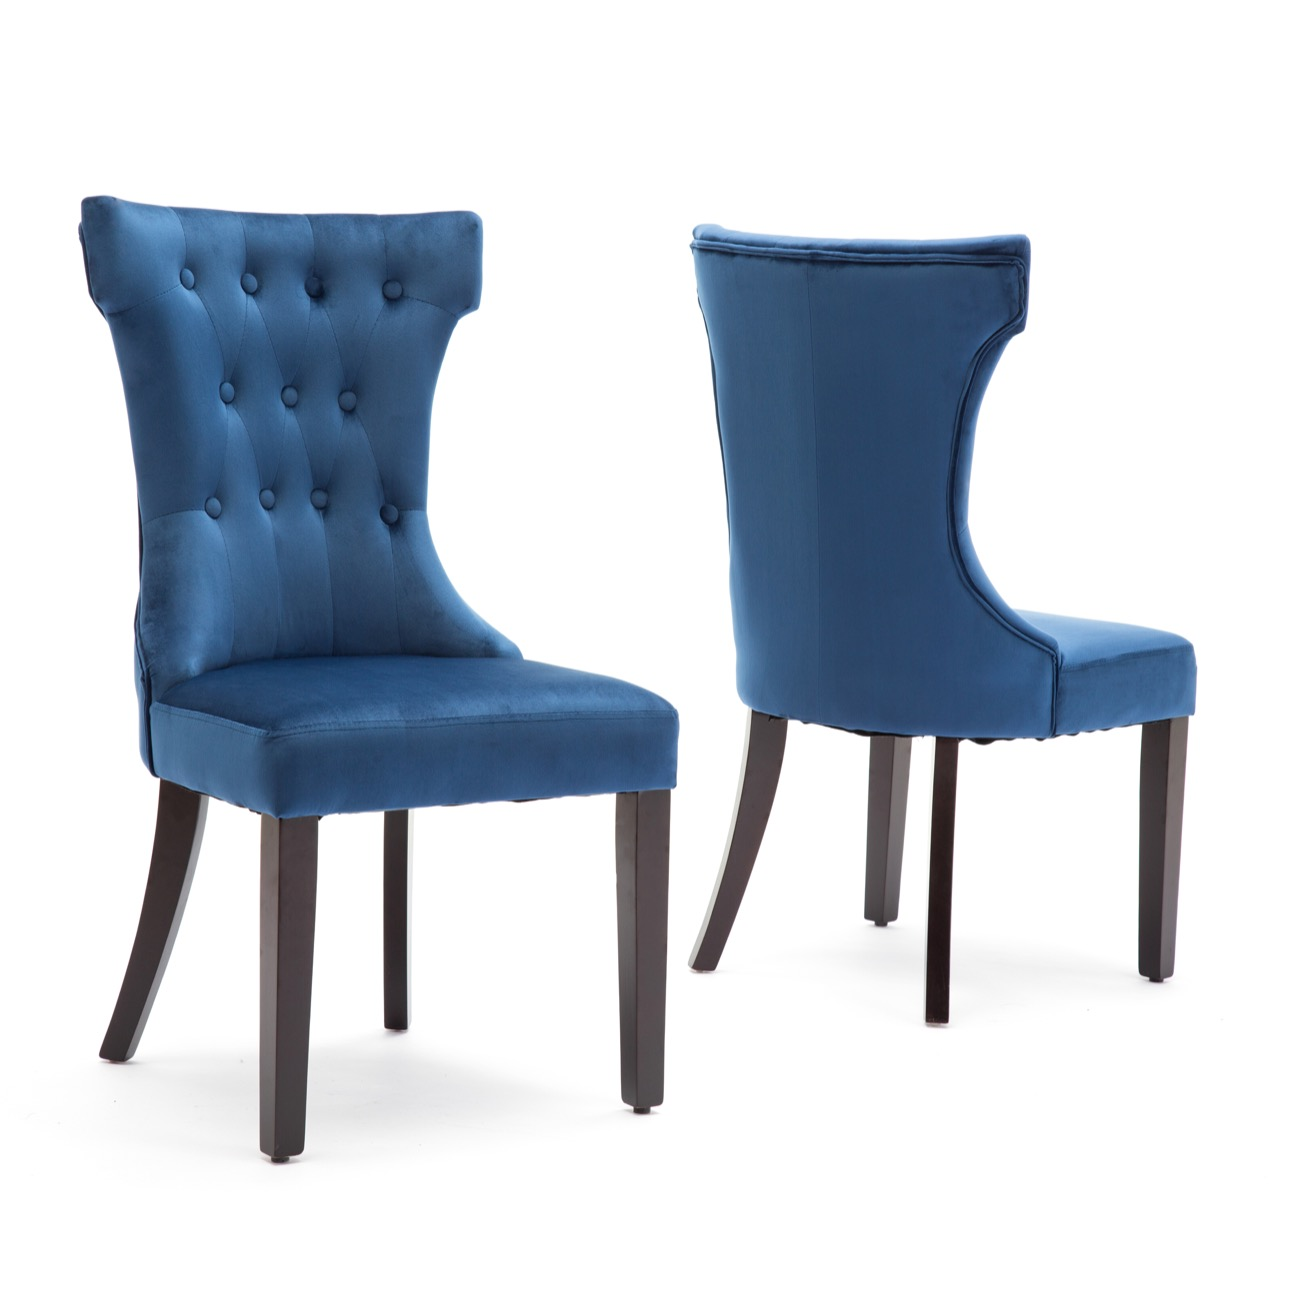 Retro Modern Dining Chair Blue Fabric: Set Of 2 Elegant Tufted Design Fabric Upholstered Modern